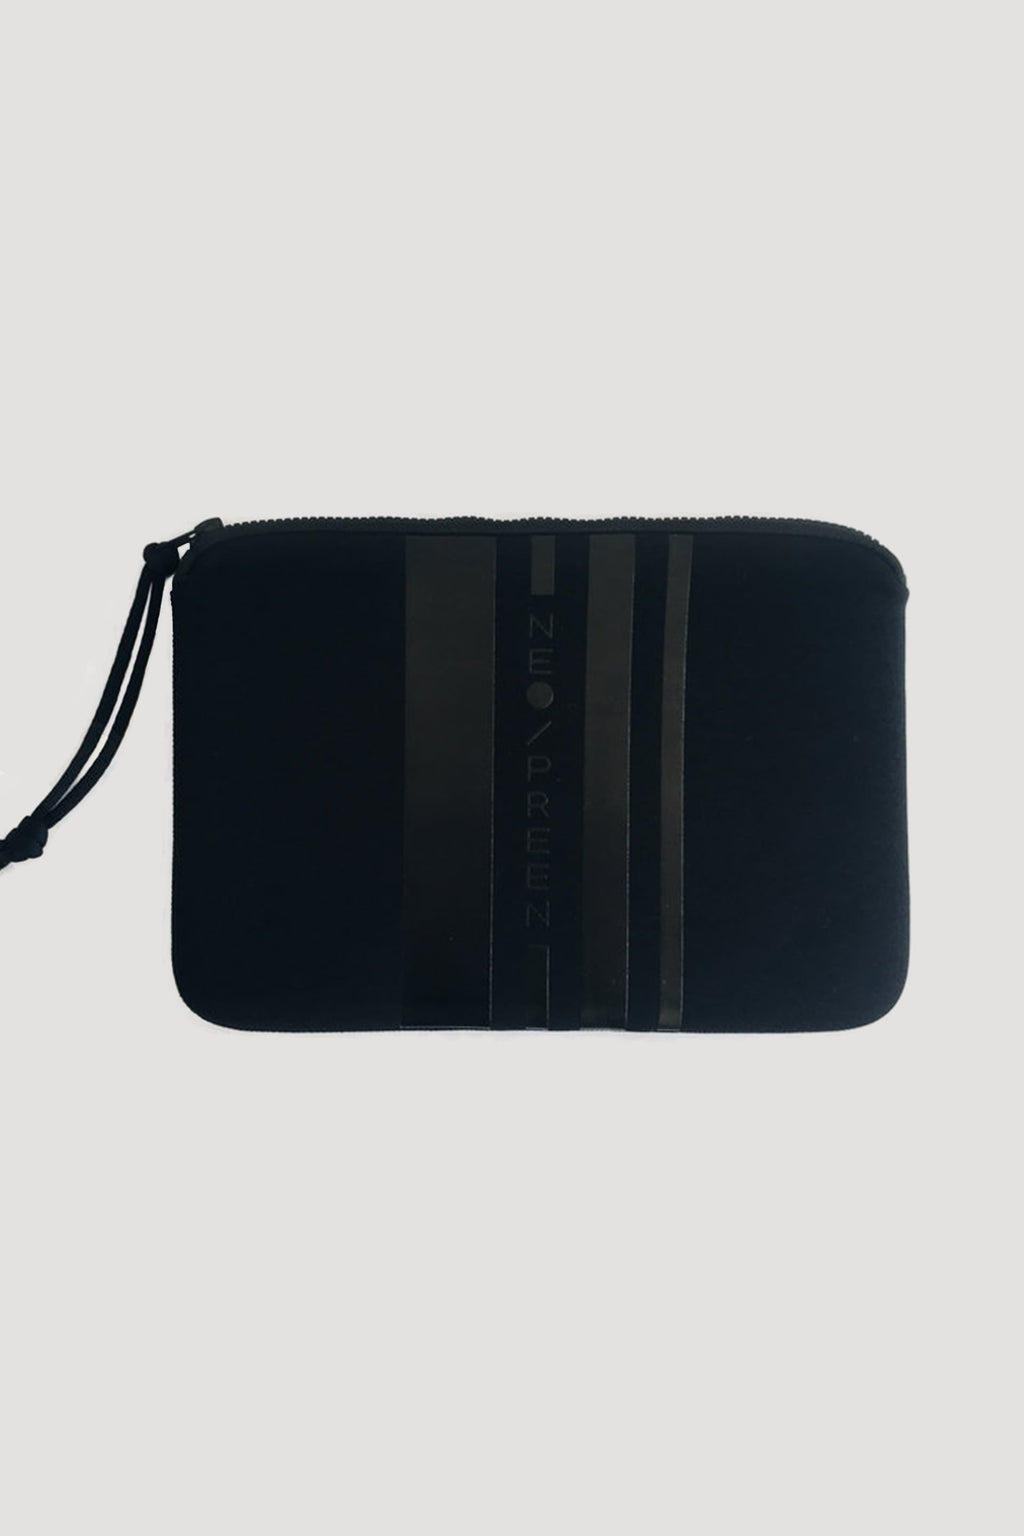 NEO/PREEN Large Clutch - Midnight from Active Truth™